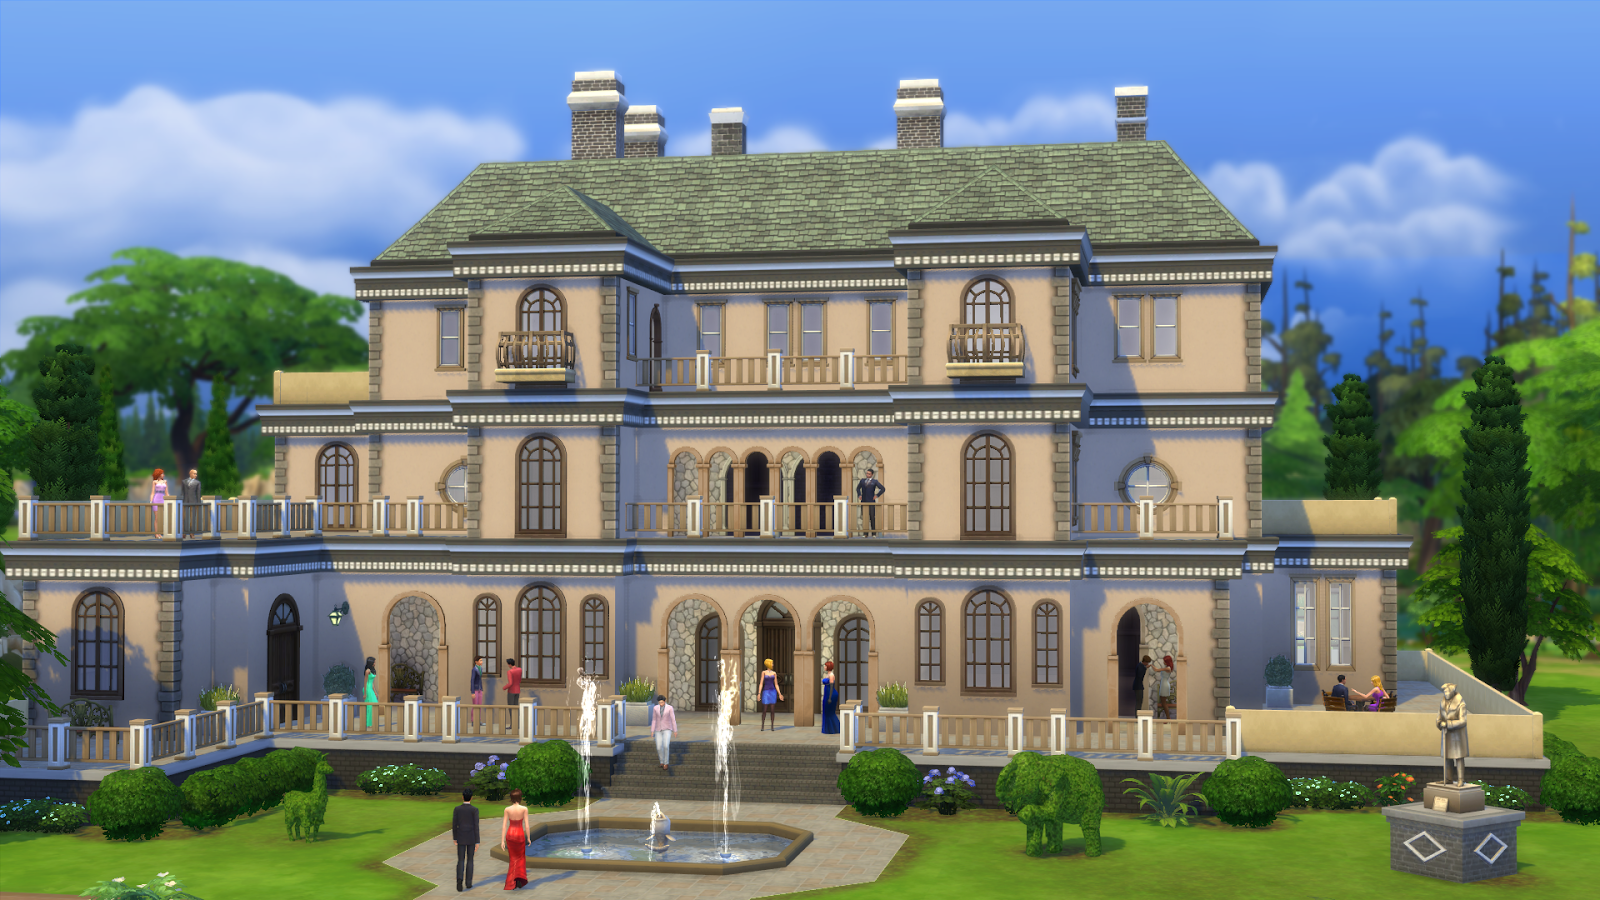 I will be building and creating for The Sims 4 and I suspect many